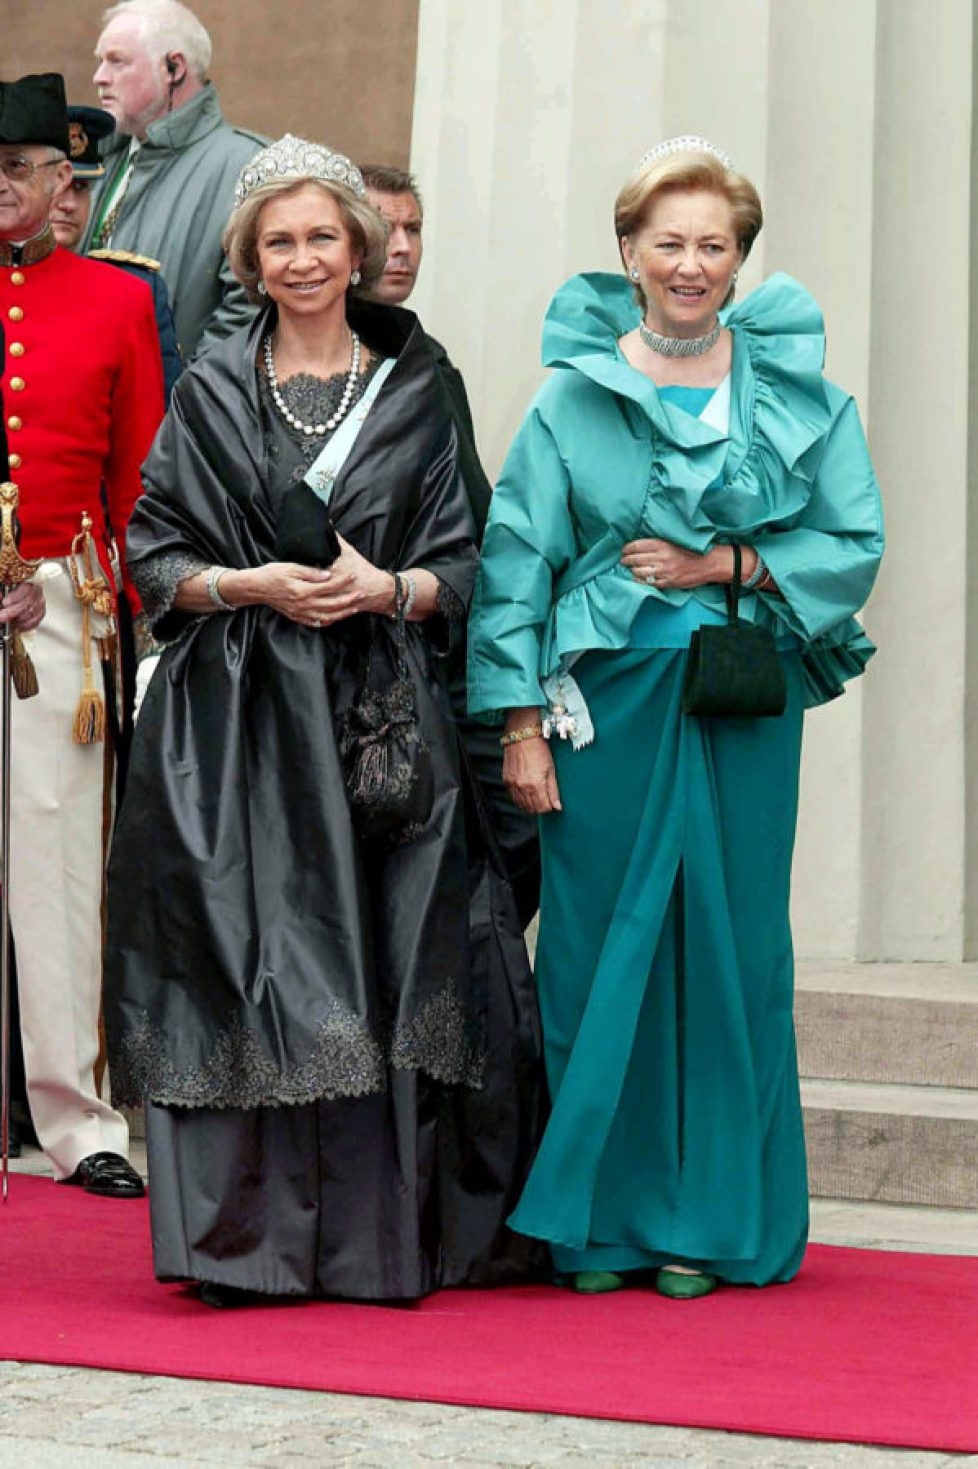 WEDDING OF CROWN PRINCE FREDERIK AND MARY DONALDSON, COPENHAGEN CATHEDRAL, DENMARK - 14 MAY 2004